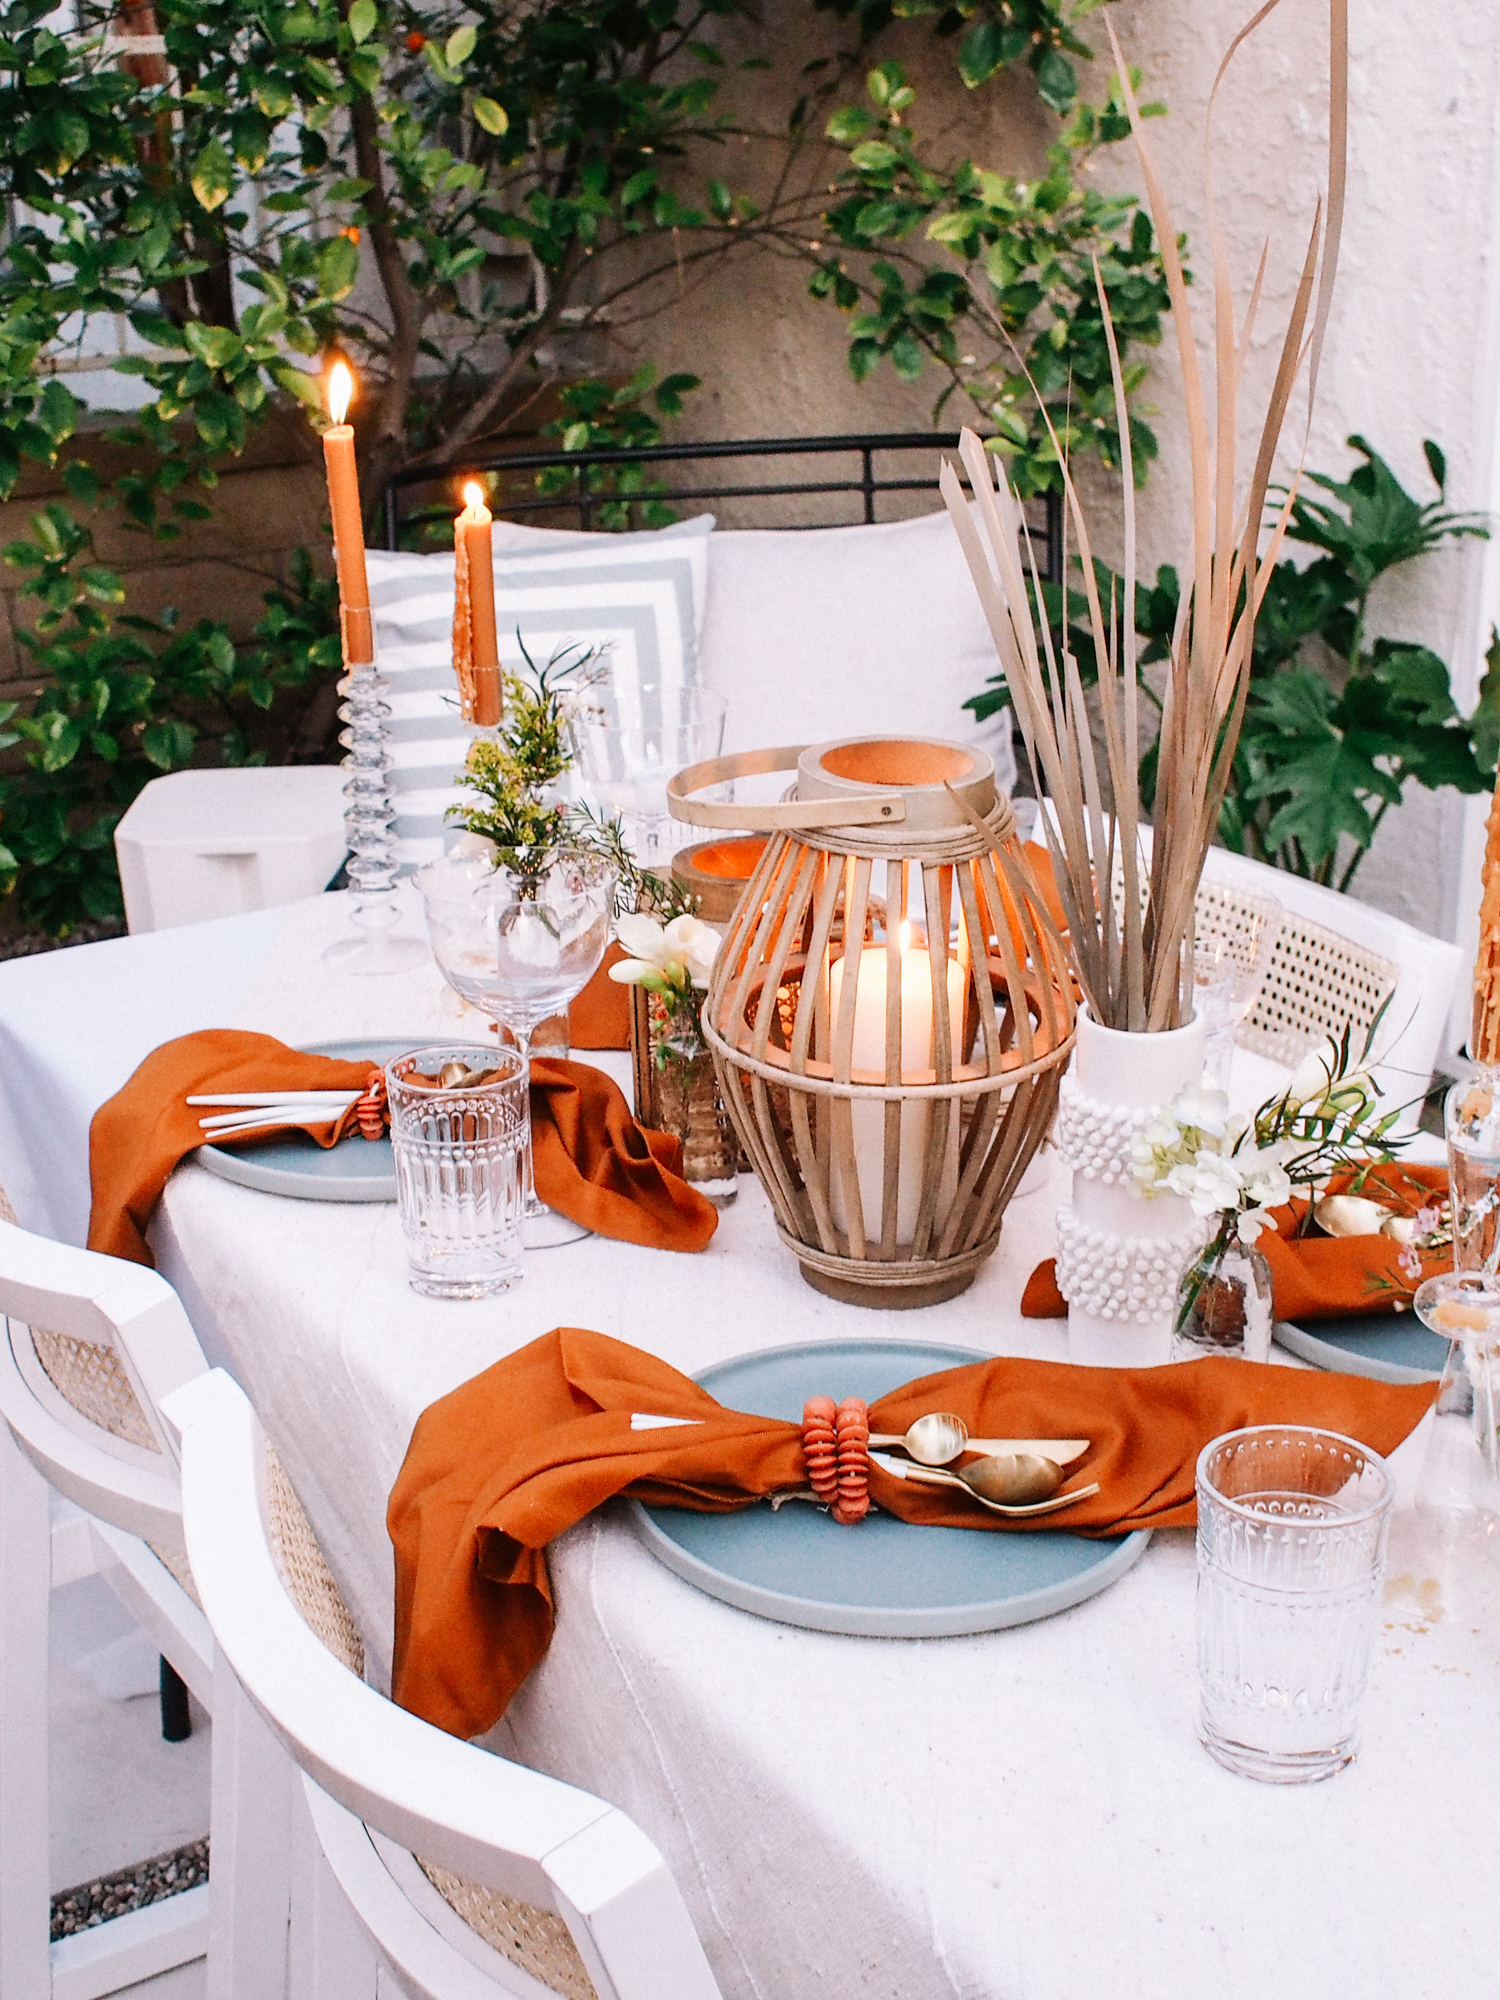 Tips for Hosting a Dinner In Your Backyard or Garden  | A Fabulous Fete